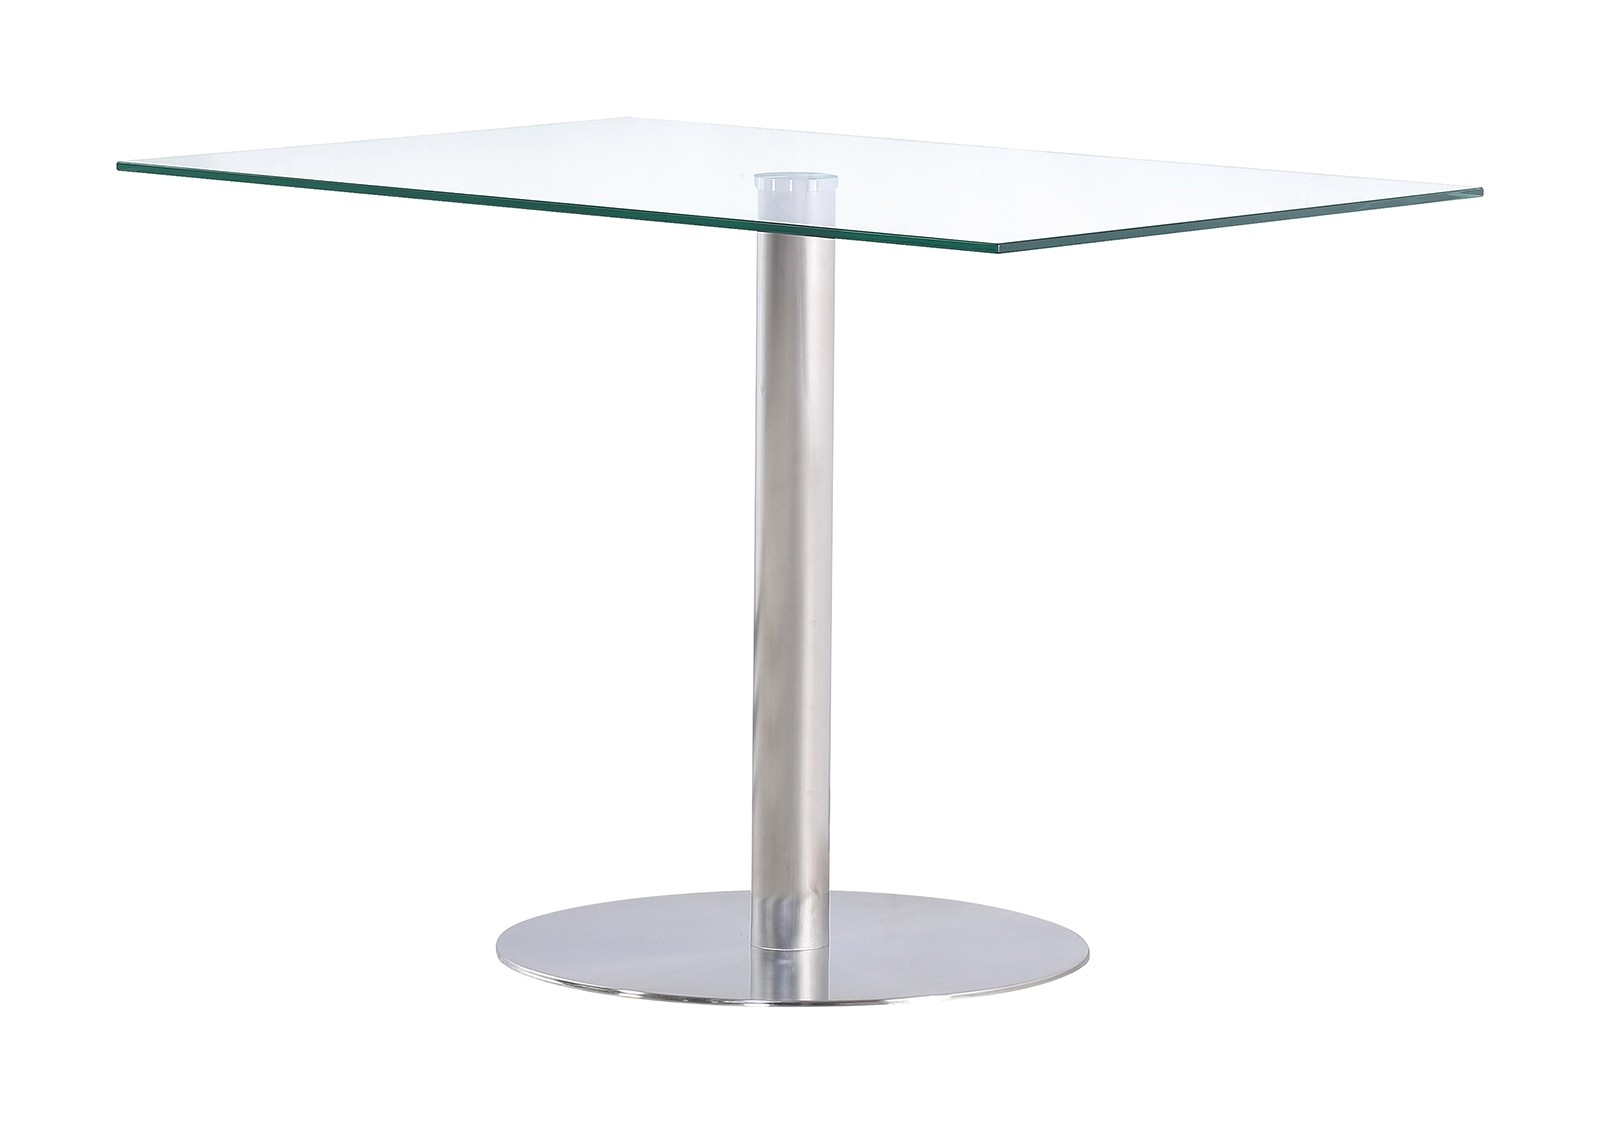 Sephora Stylish Modern Designer Glass and Steel Dining Room Kitchen Table